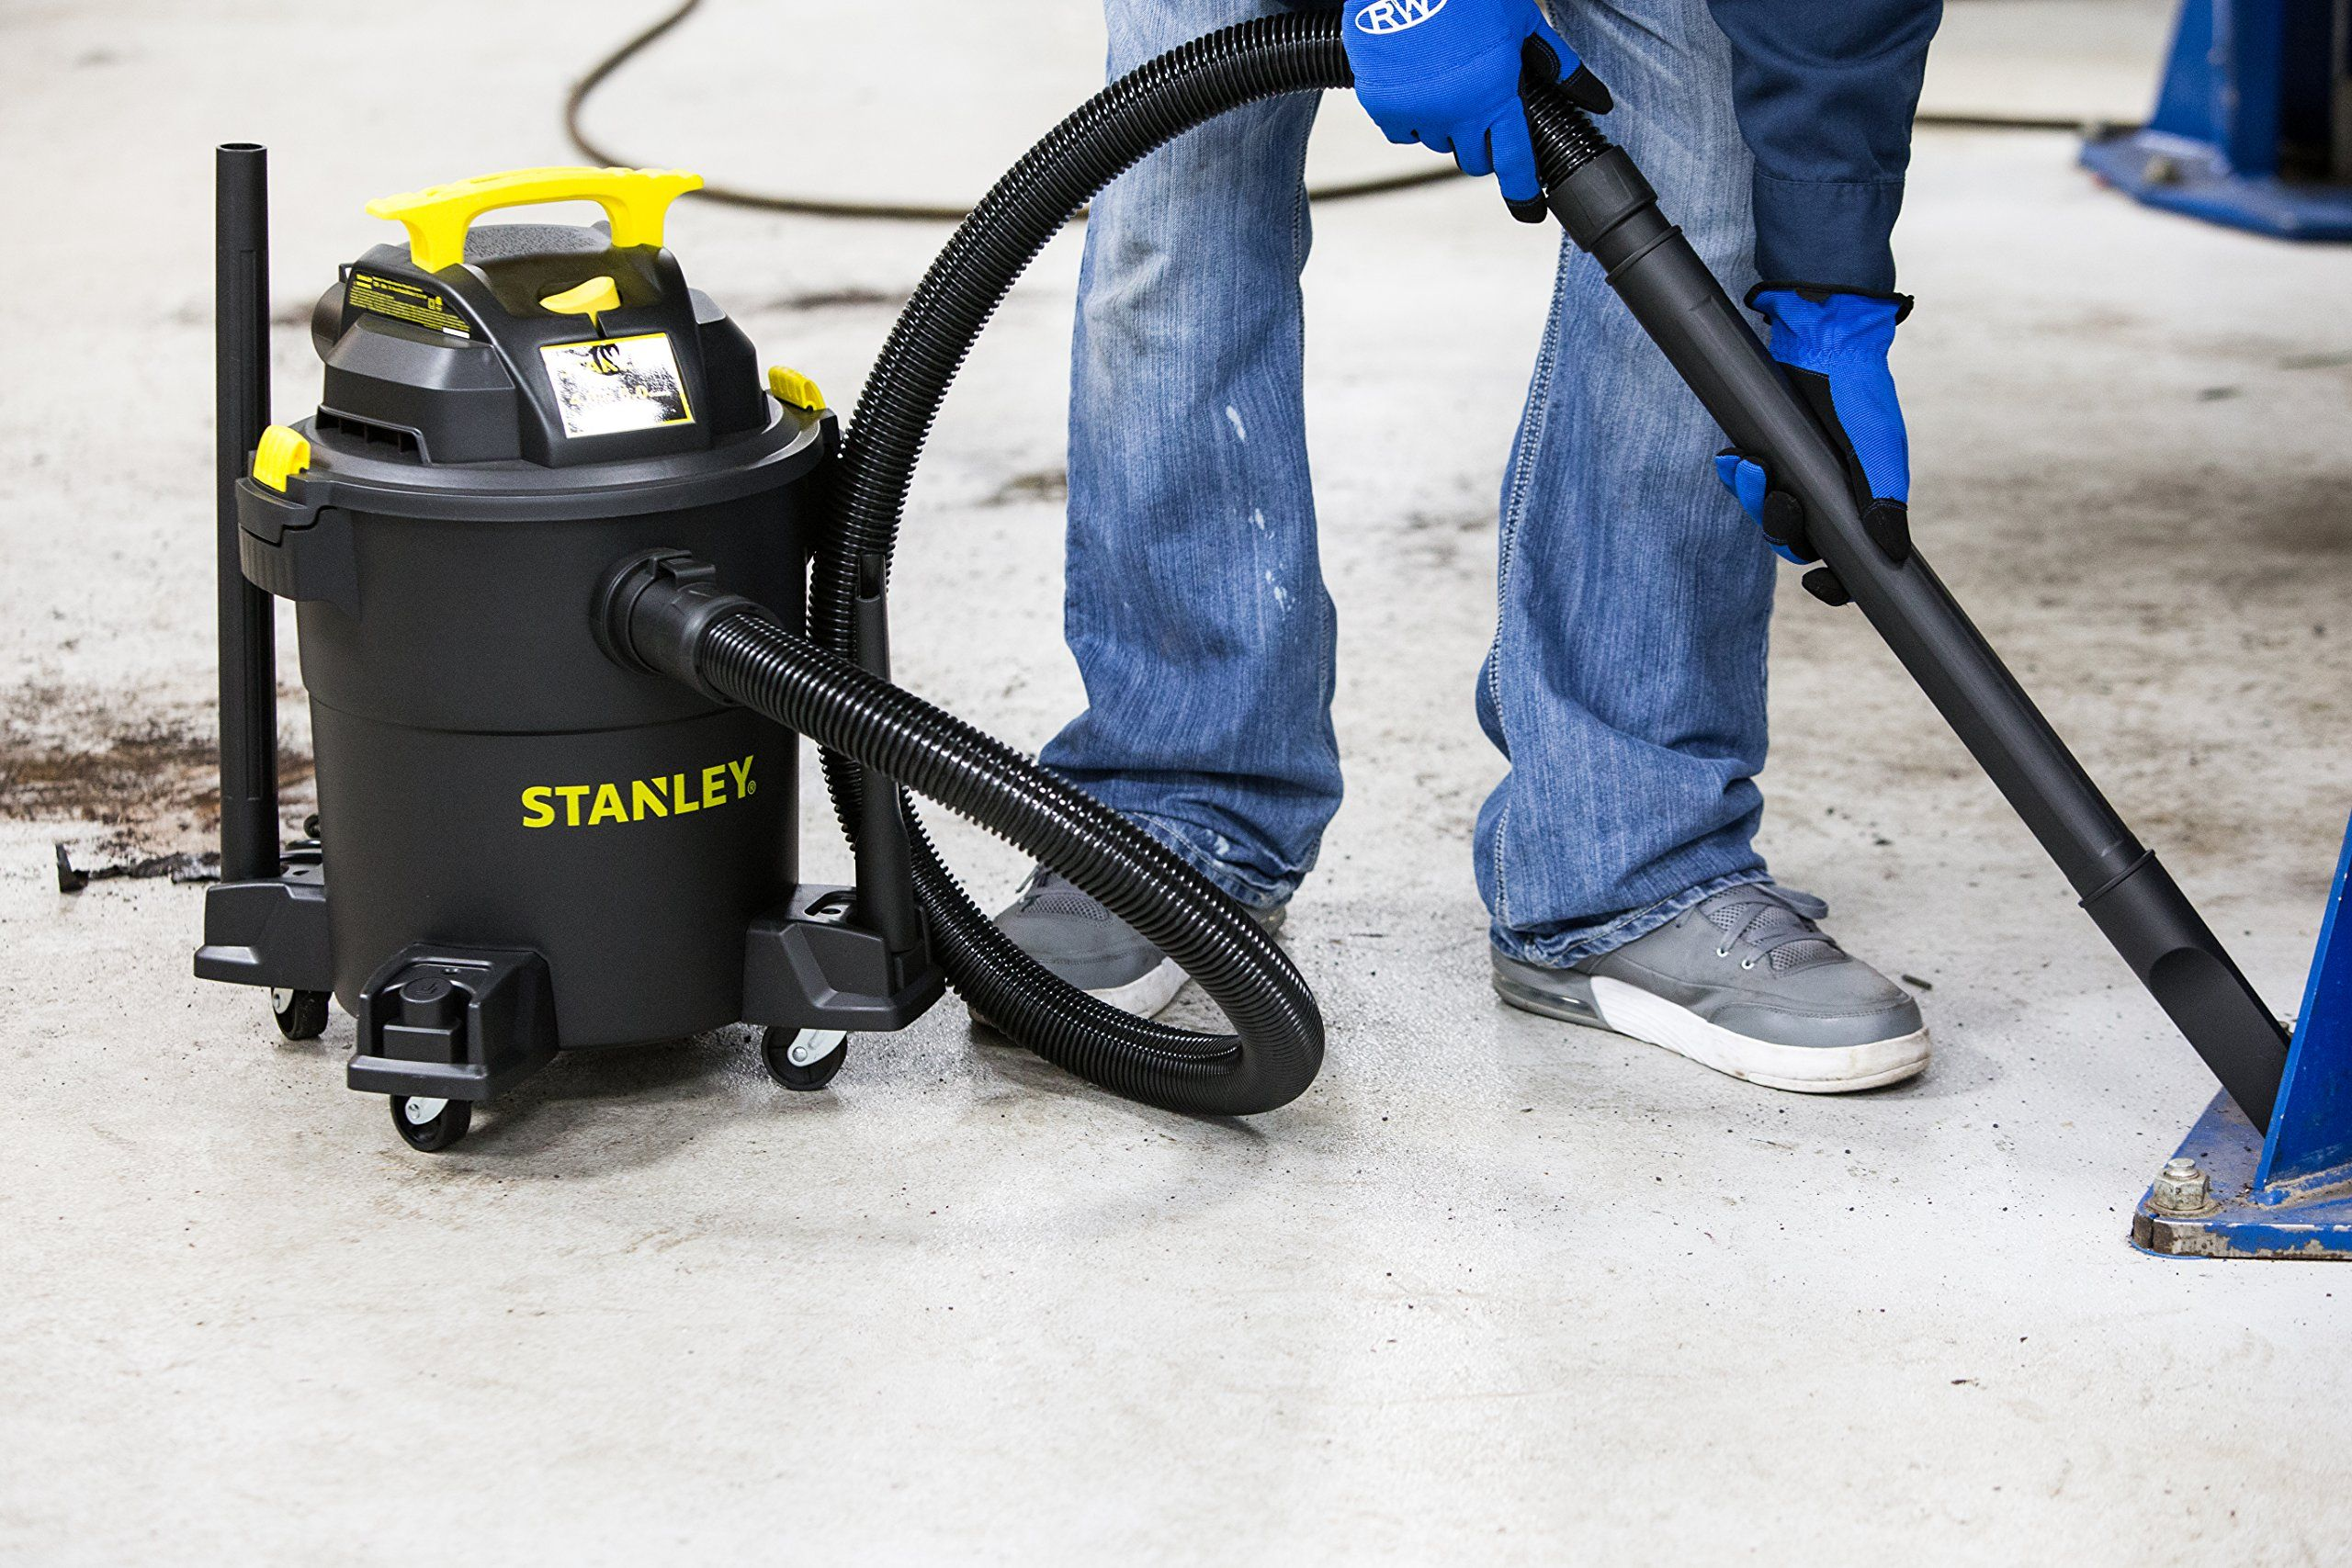 Stanley Wet Dry Vacuum 6 Gallon 4 Horsepower Dry Wet Stanley Horsepower Wet Dry Vacuum Wet Dry Vacuum Cleaner Vacuum Cleaner